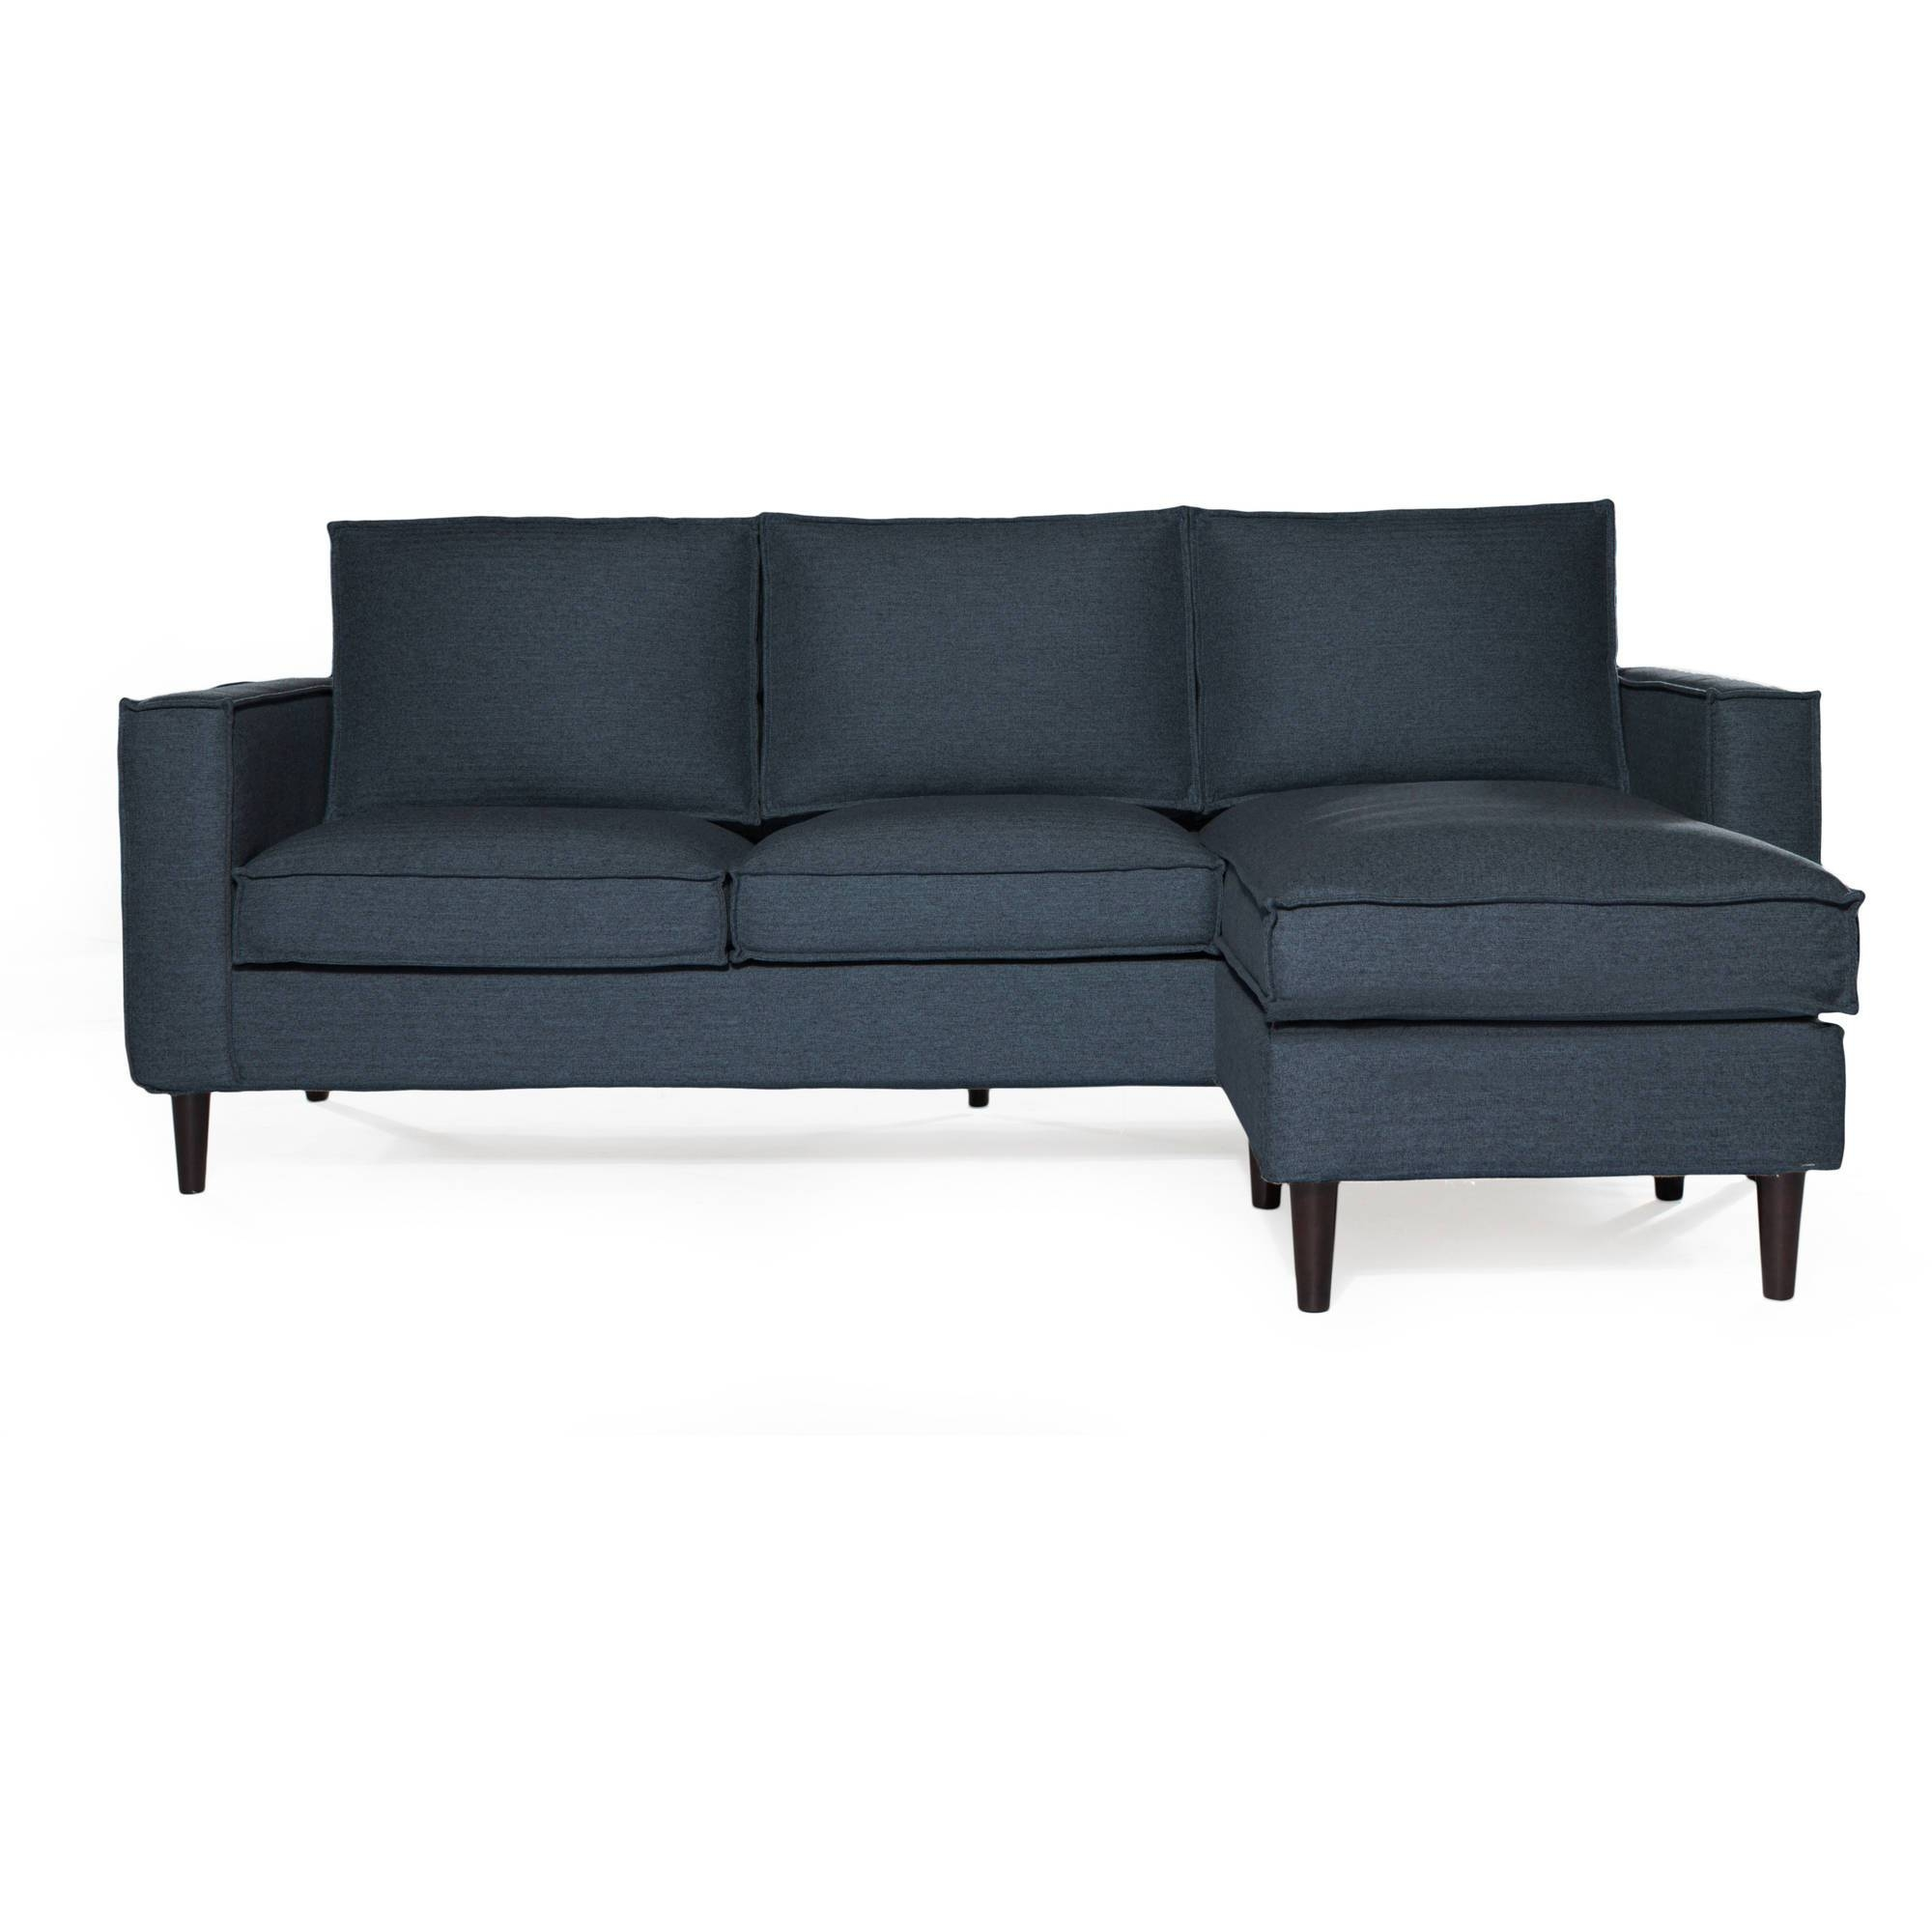 Https://ll-Us-I5.wal.co/asr/0Ddb2080-6Cd9-4F86-A51 throughout Compact Sectional Sofas (Image 3 of 30)